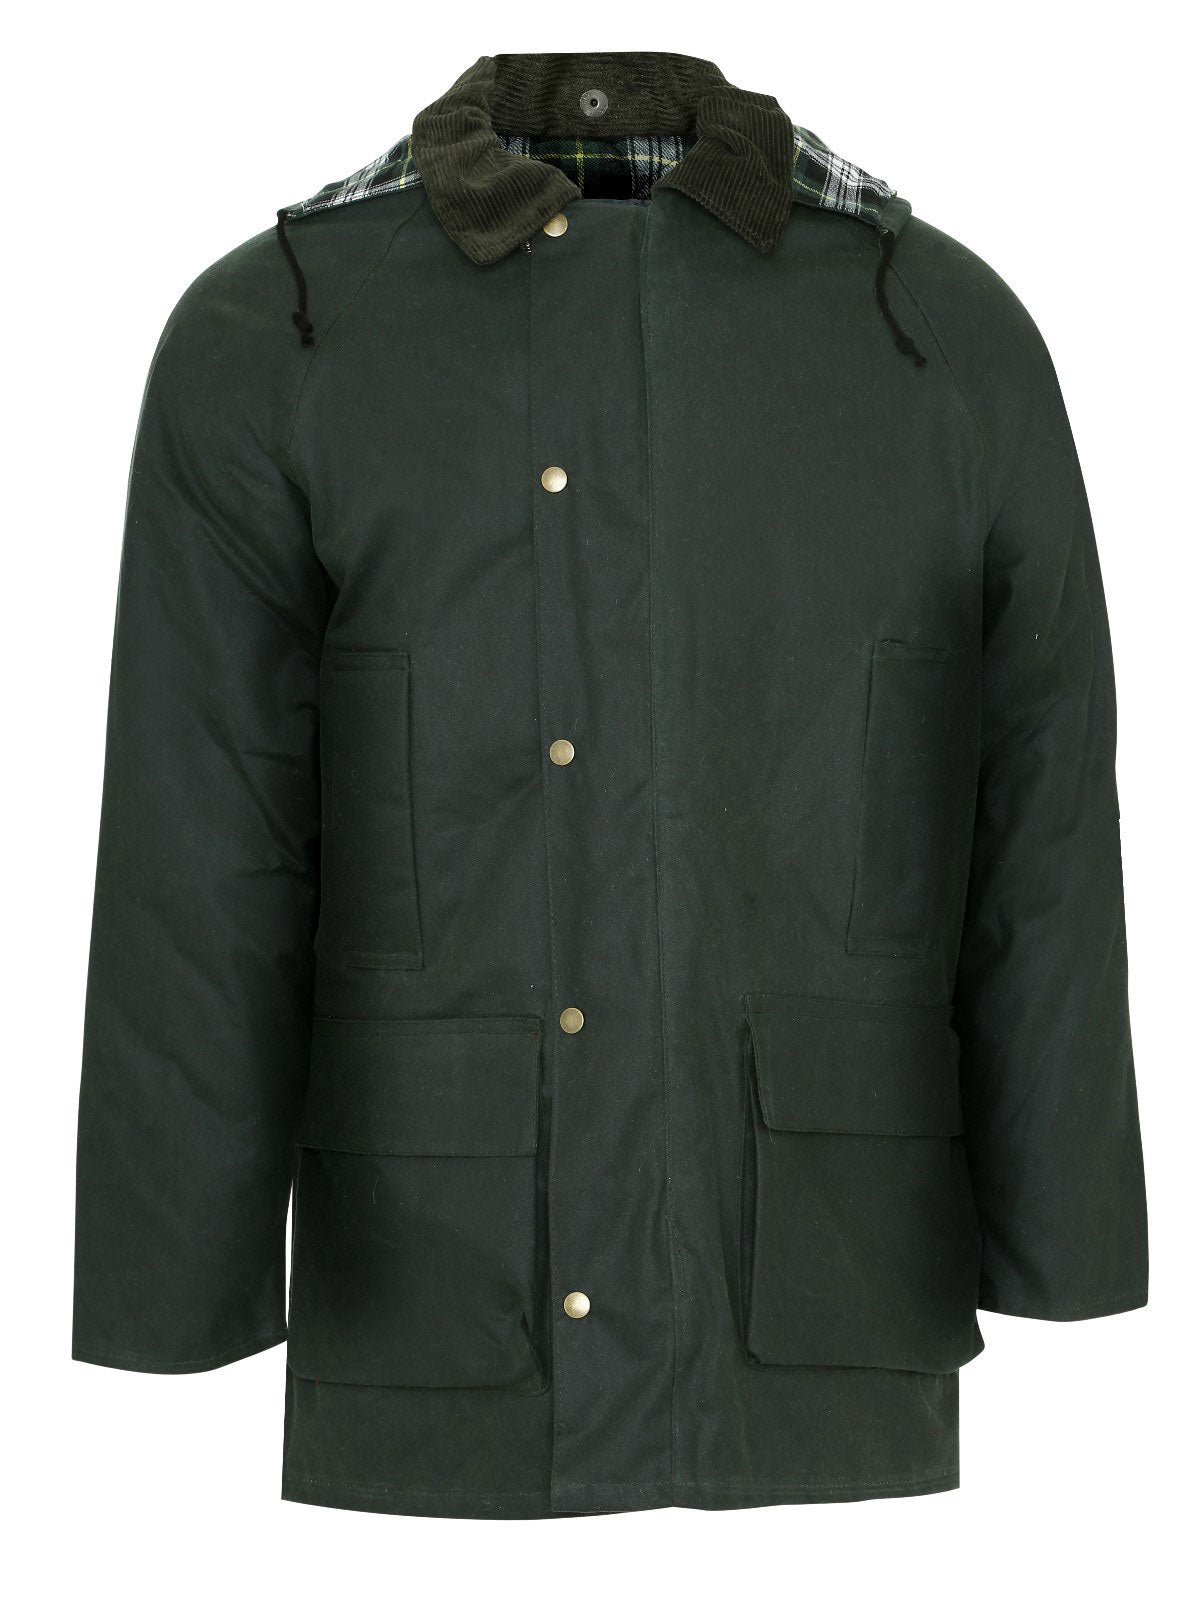 Champion Howick Waxed Cotton Coat olive green